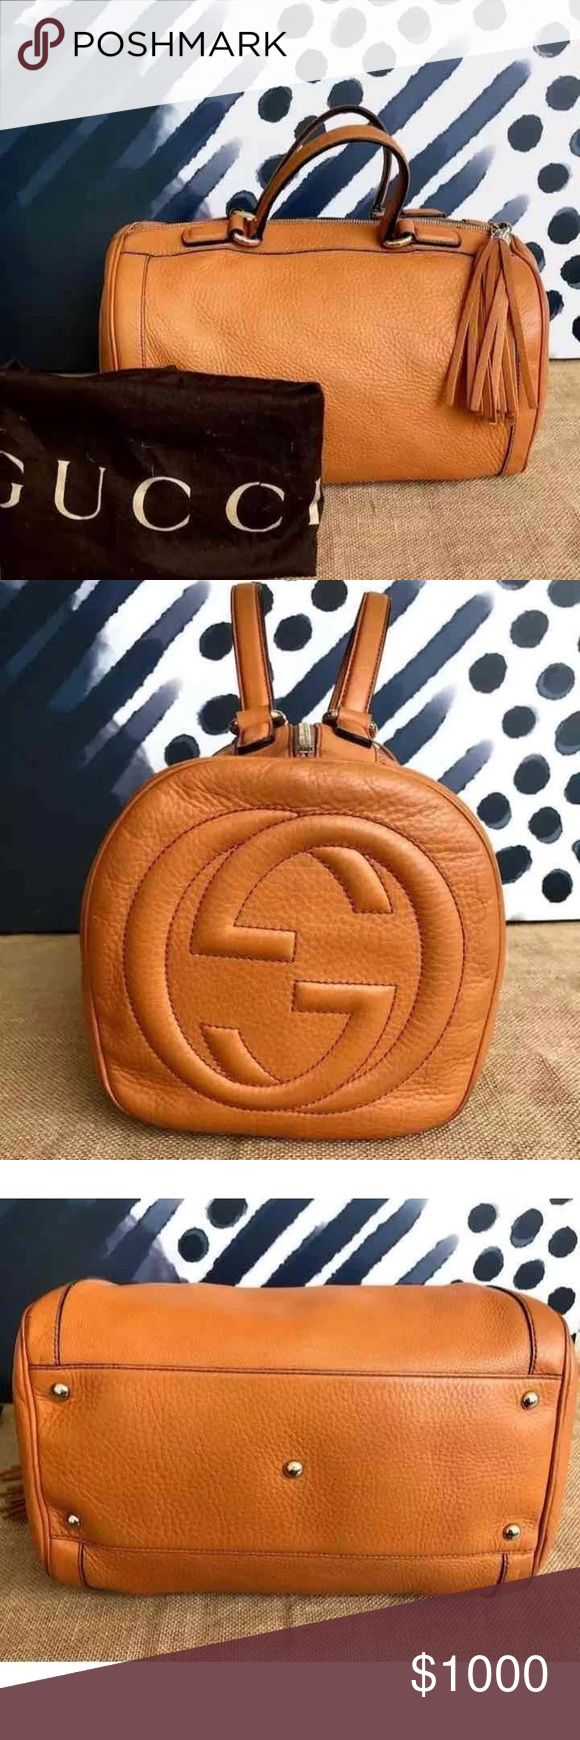 Gucci leather Boston Soho Authentic gently used and well cared for. Originally $1700 #guccisoho #gucciboston Gucci Bags Satchels